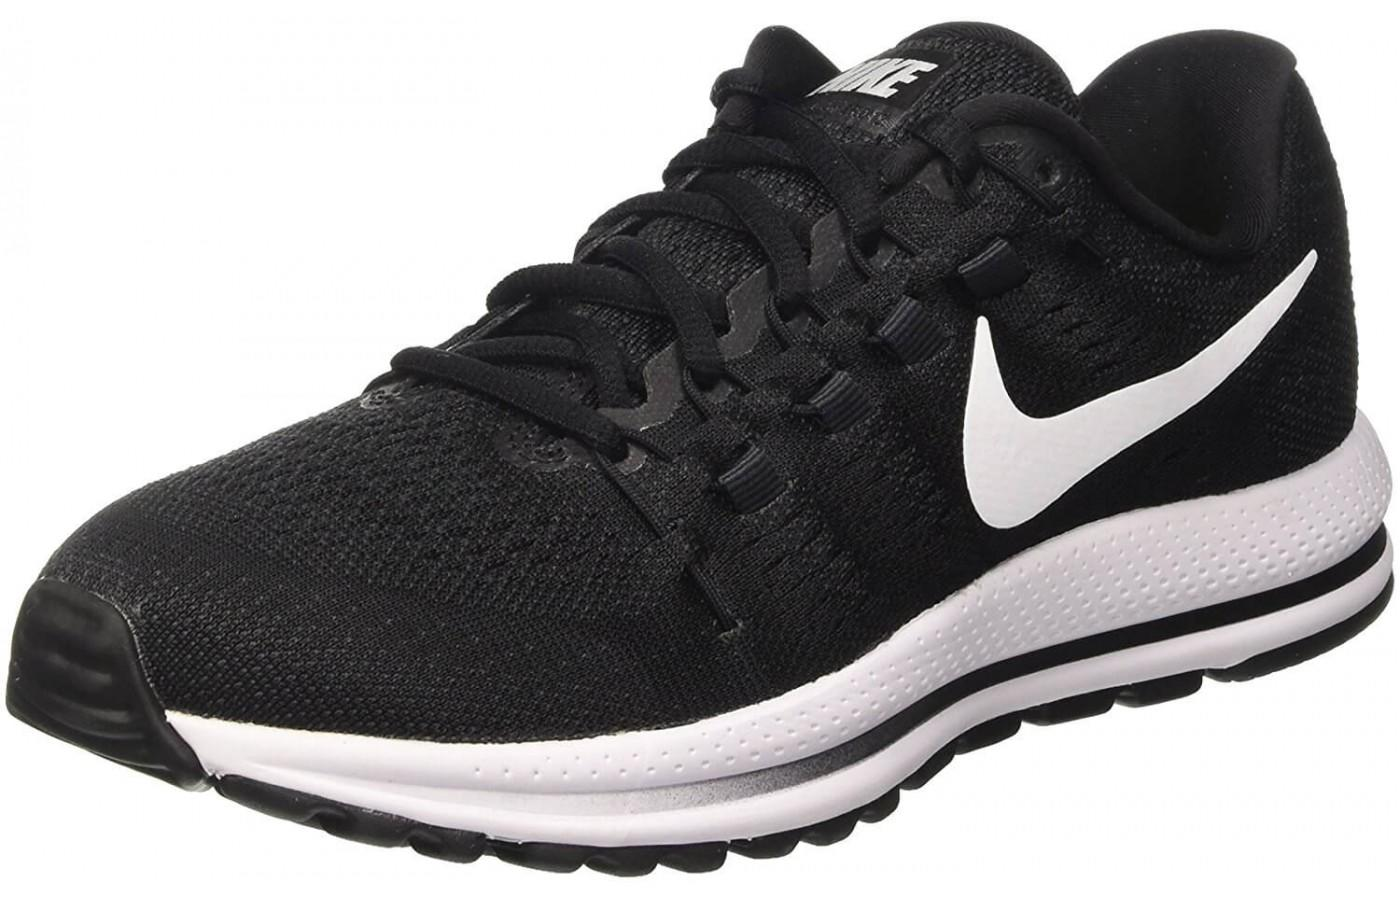 The Nike Air Zoom Vomero 12 shown from the front/side